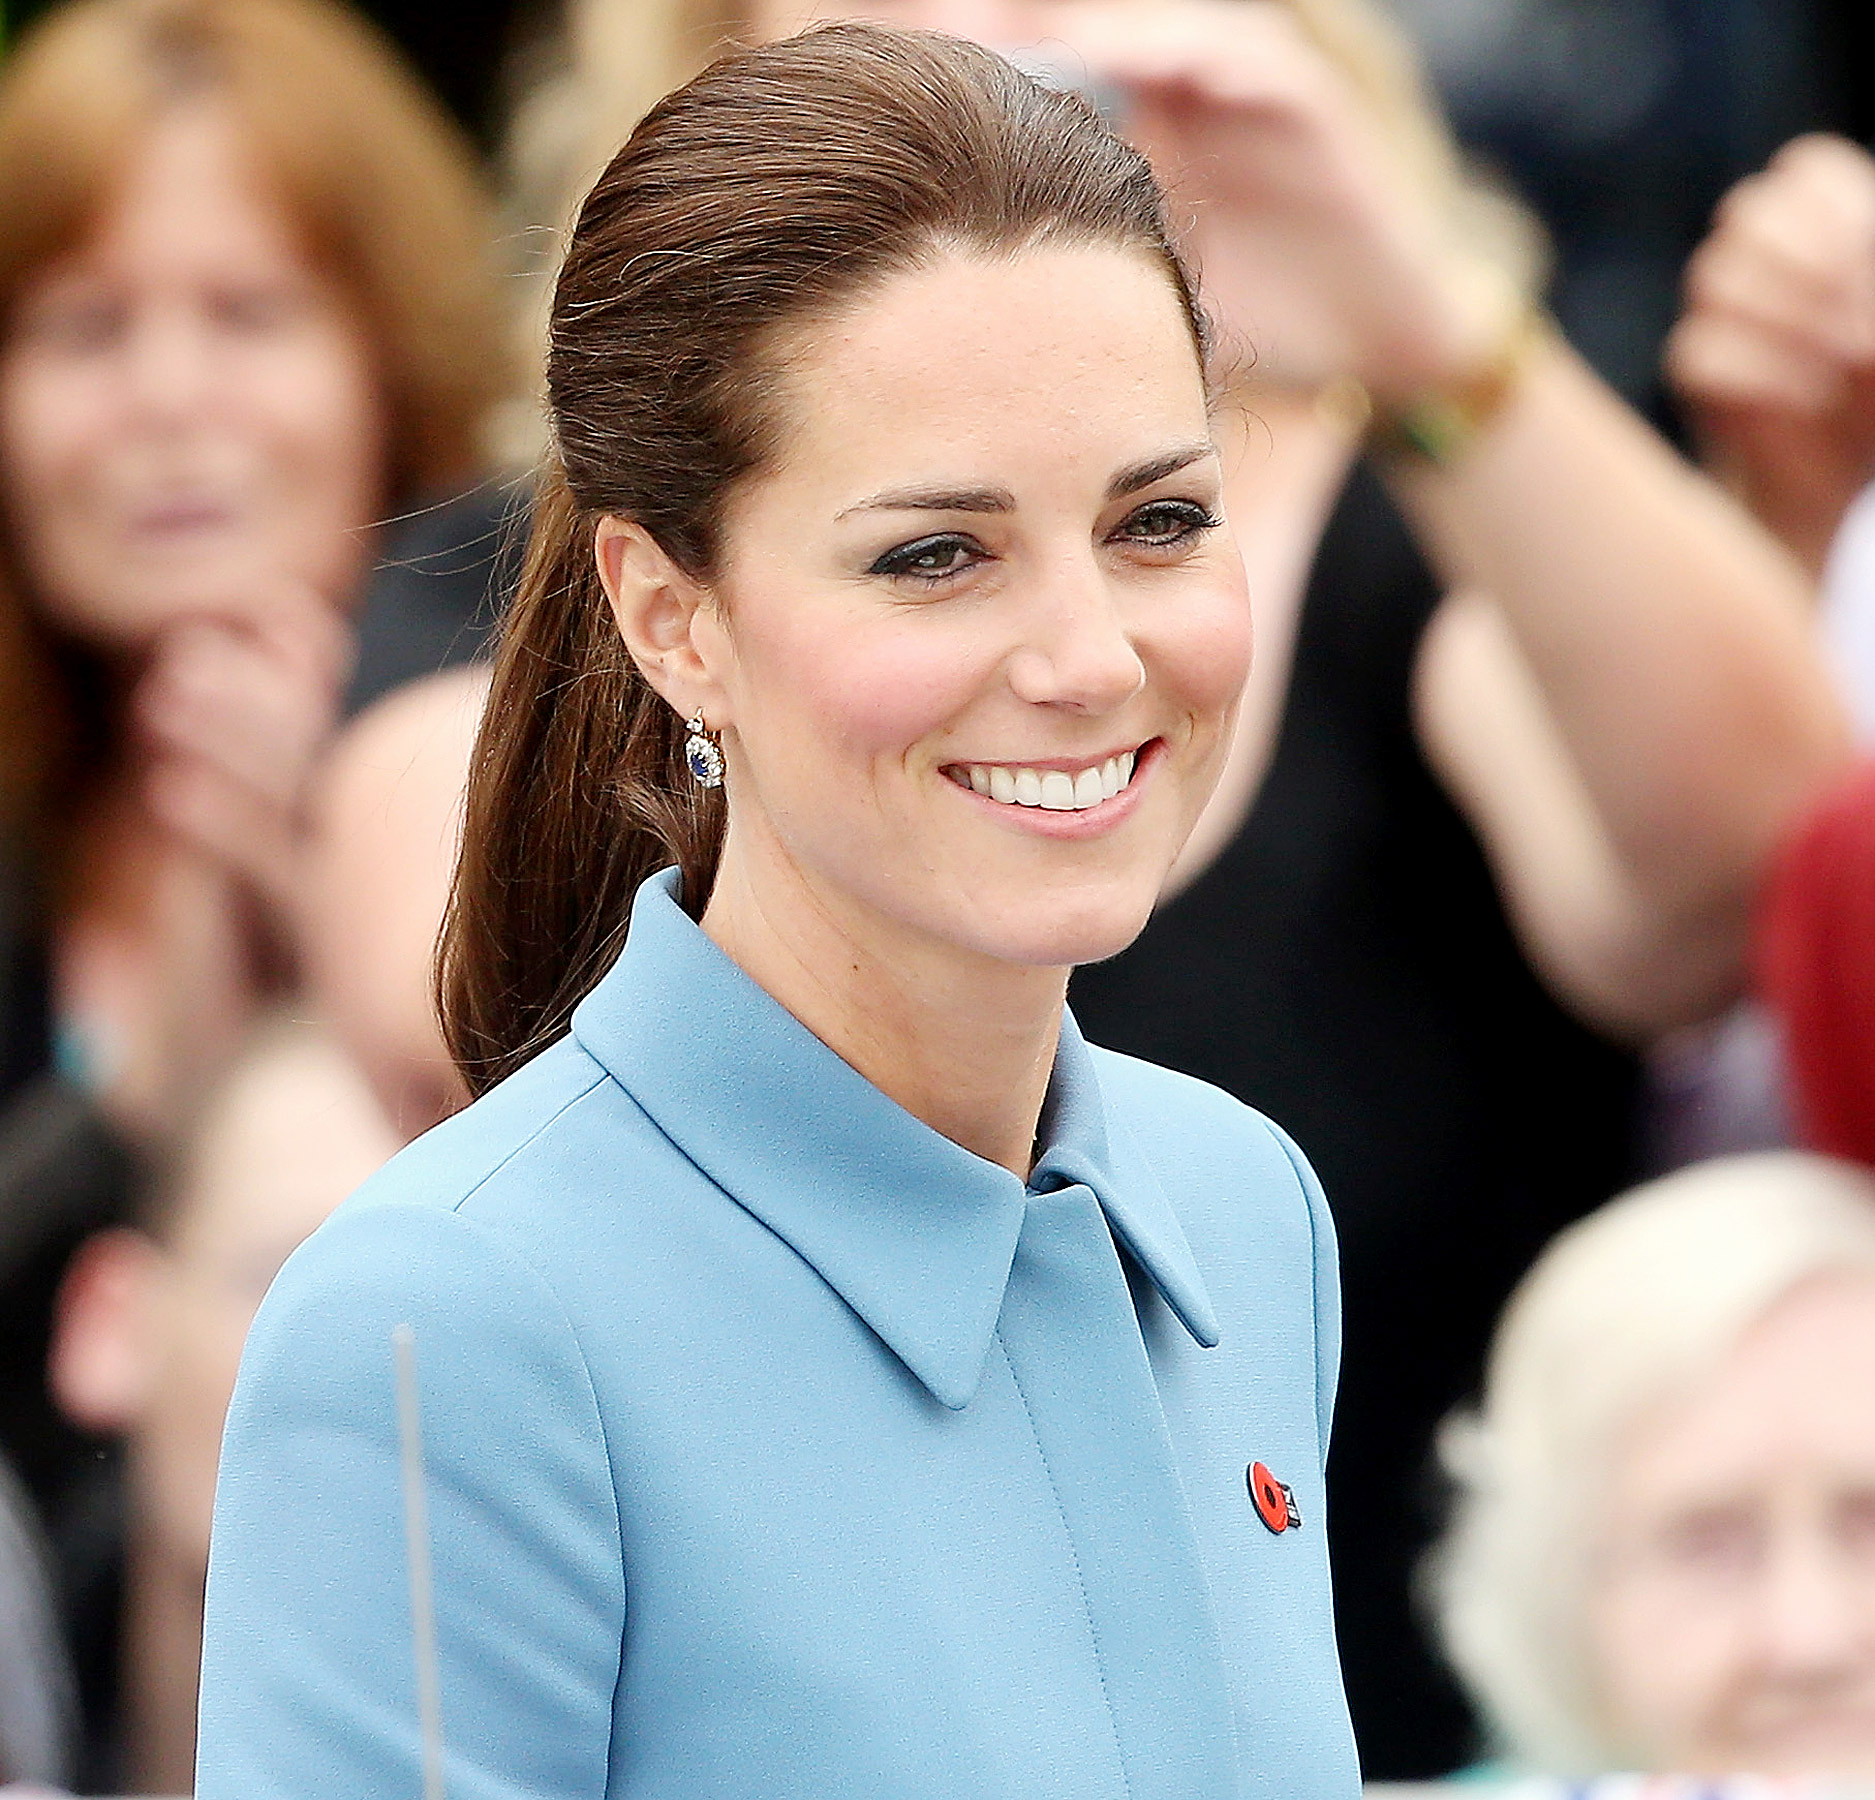 Kate Middleton wallpaper 12jpg 1875x1800